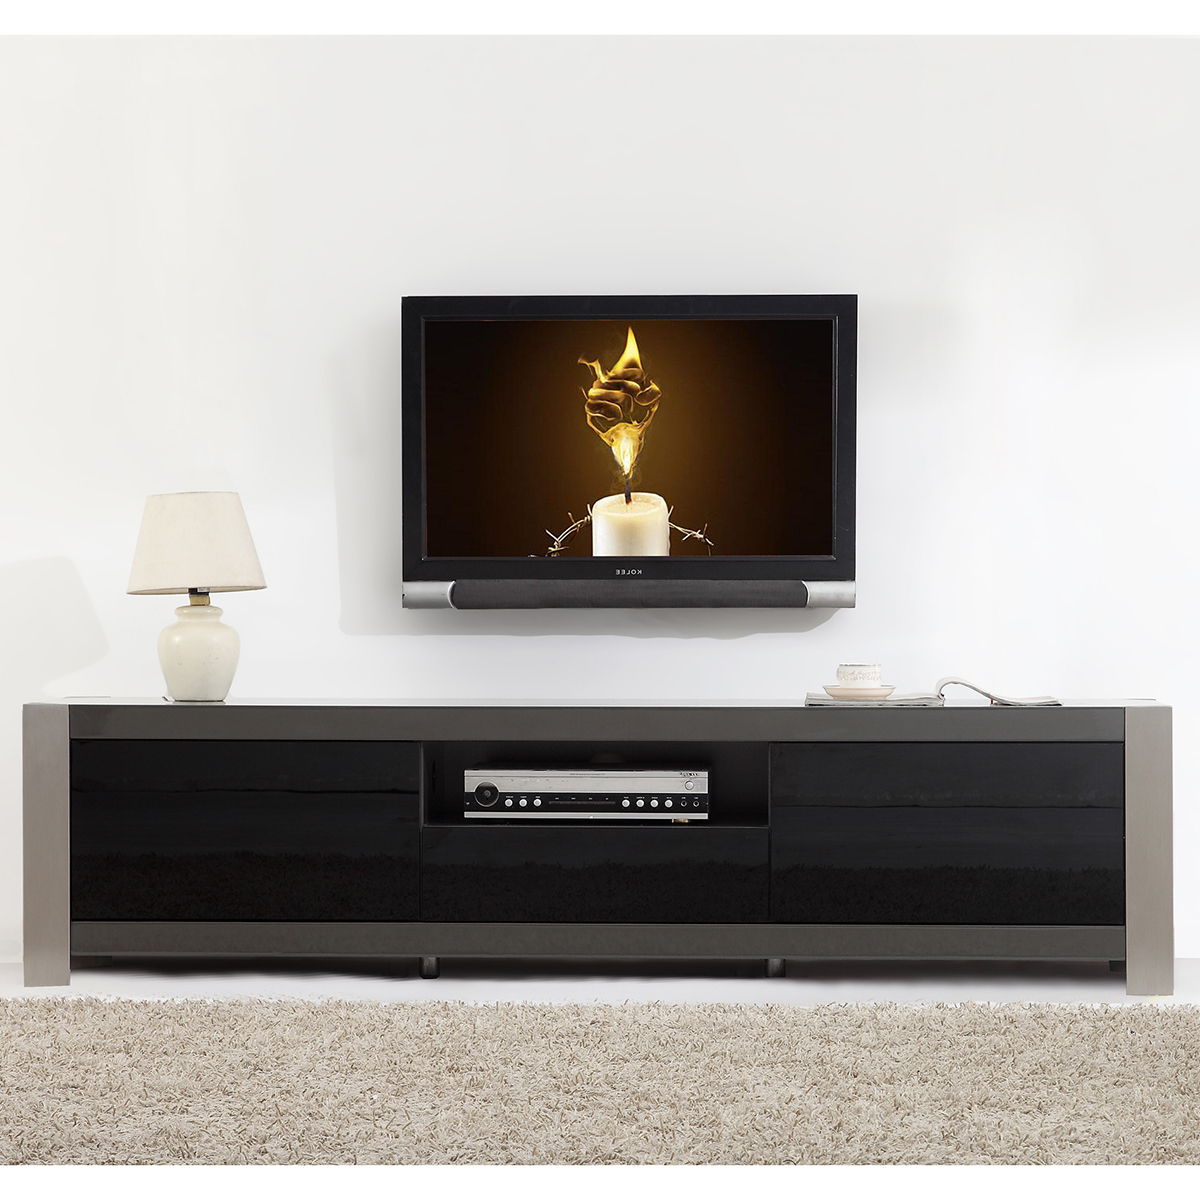 Modern Tv Stand With Electric Fireplace Black For Sale Stands Uk Within Most Current Contemporary Corner Tv Stands (View 20 of 20)